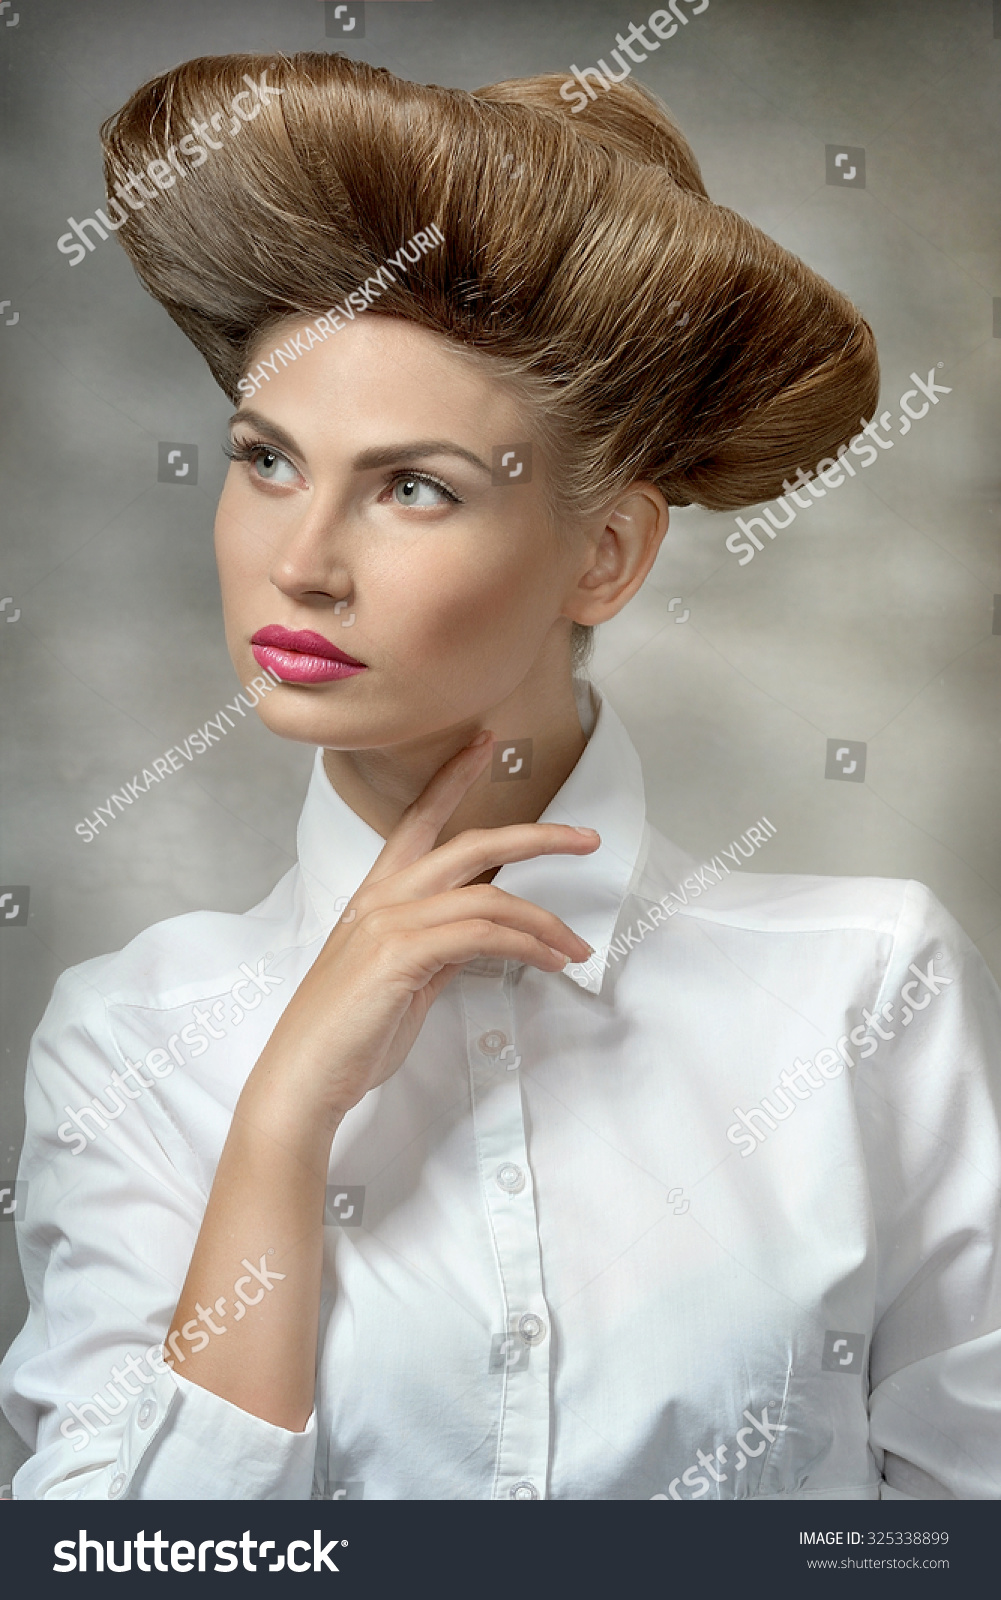 Girl White Shirt Unusual Hairstyle Looks Stock Photo Edit Now